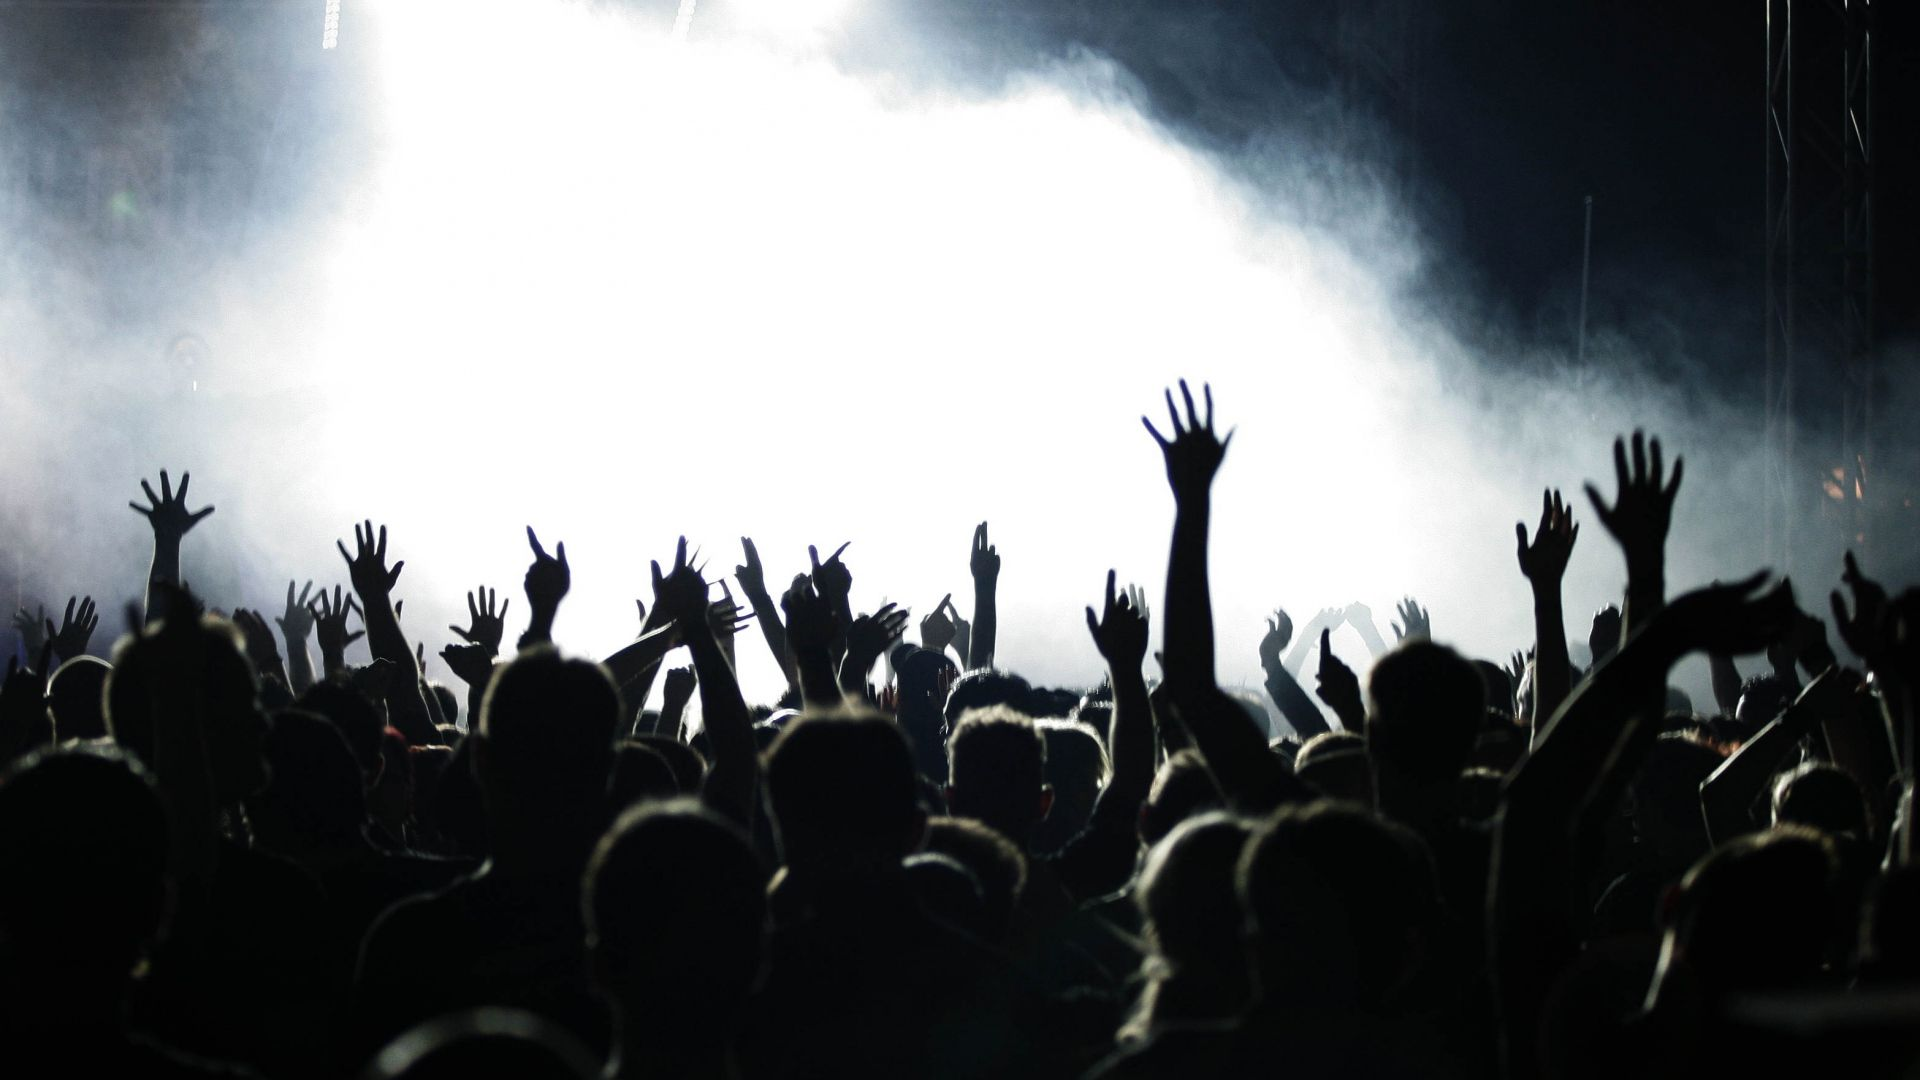 Pin by Steve Pope on Rock Me Silhouette photos Concert crowd 1920x1080